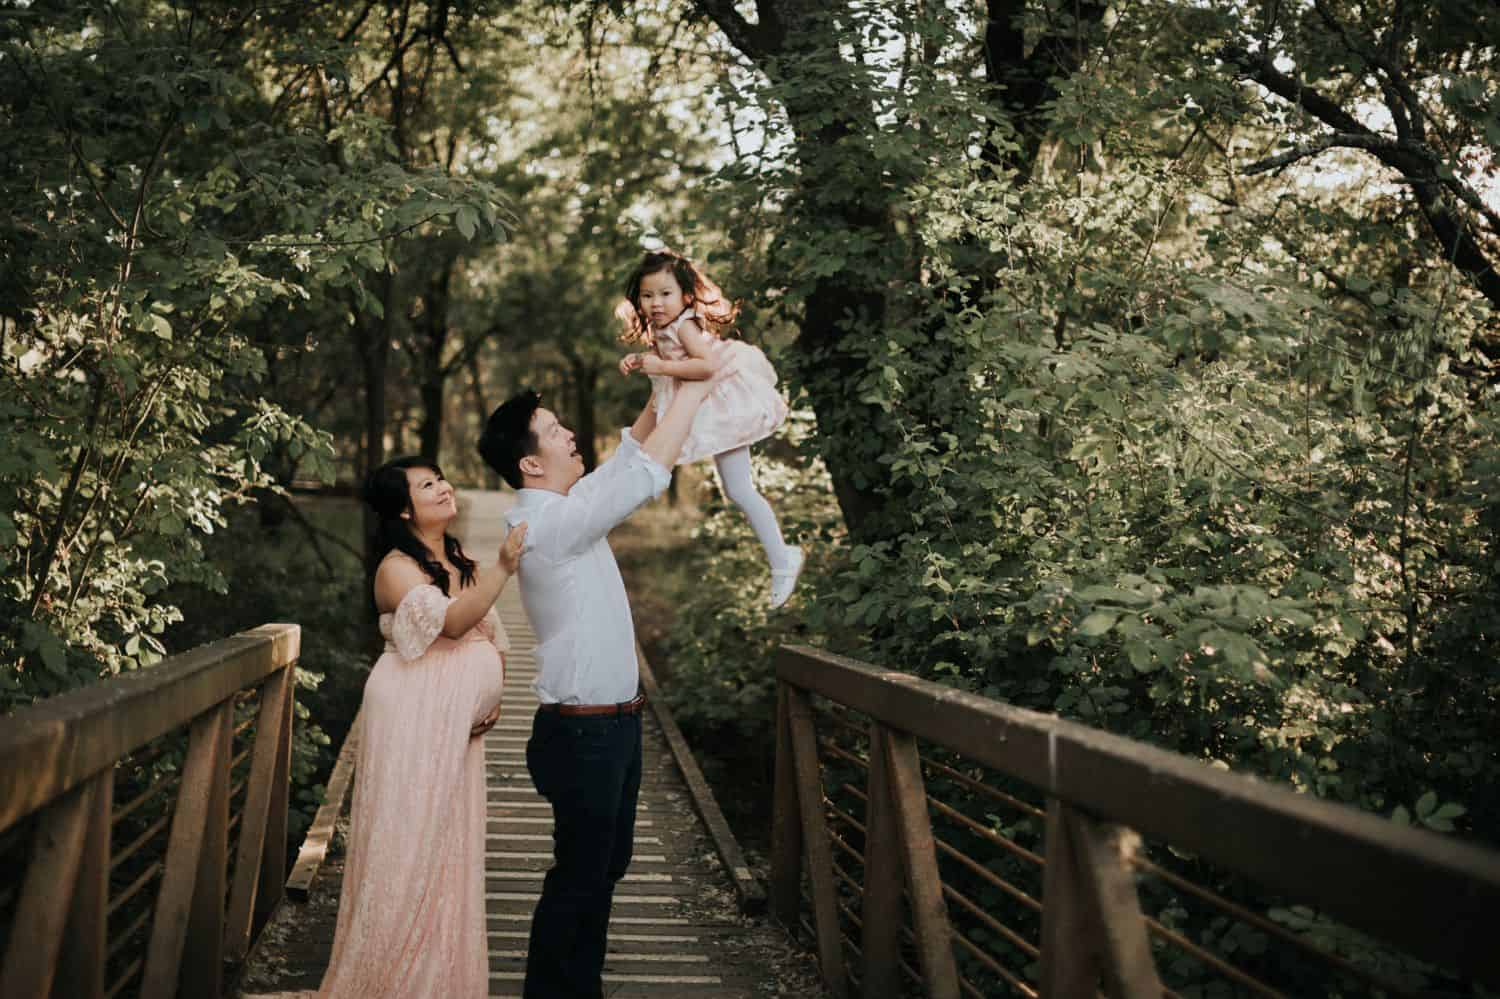 A pregnant mother stands behind her husband on a forest boardwalk. The father is holding his toddler daughter up in the air and laughing.